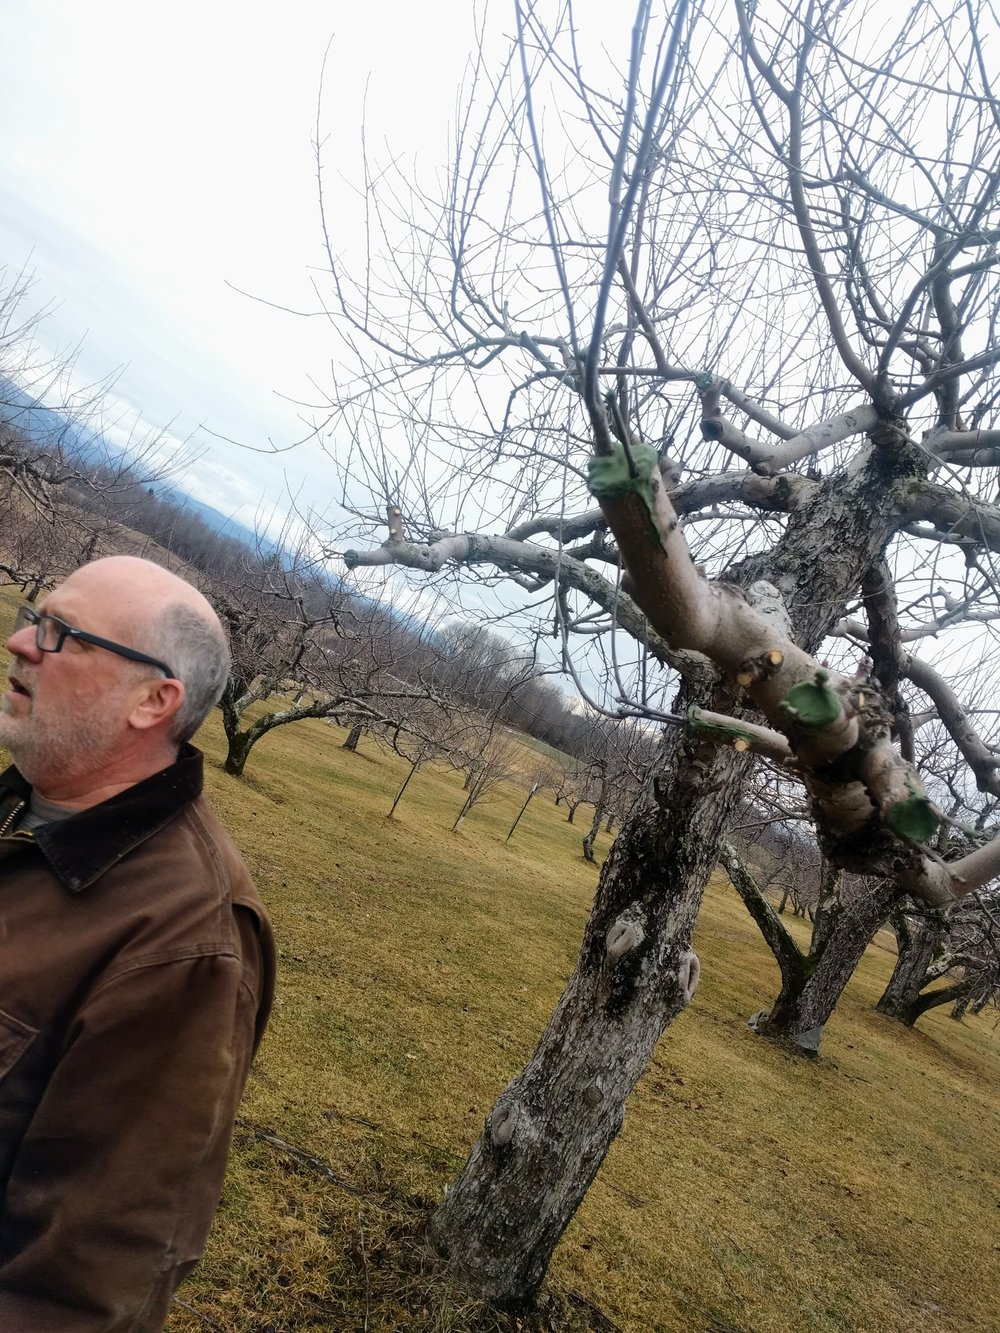 Brad Koehler, Orchardist and Cidermaker at Windfall Orchard, grows over fifty varieties of apples in his Cornwall, Vermont heritage orchard. The Koehlers will be opening a tasting room at Windfall Orchard in the Spring of 2017.